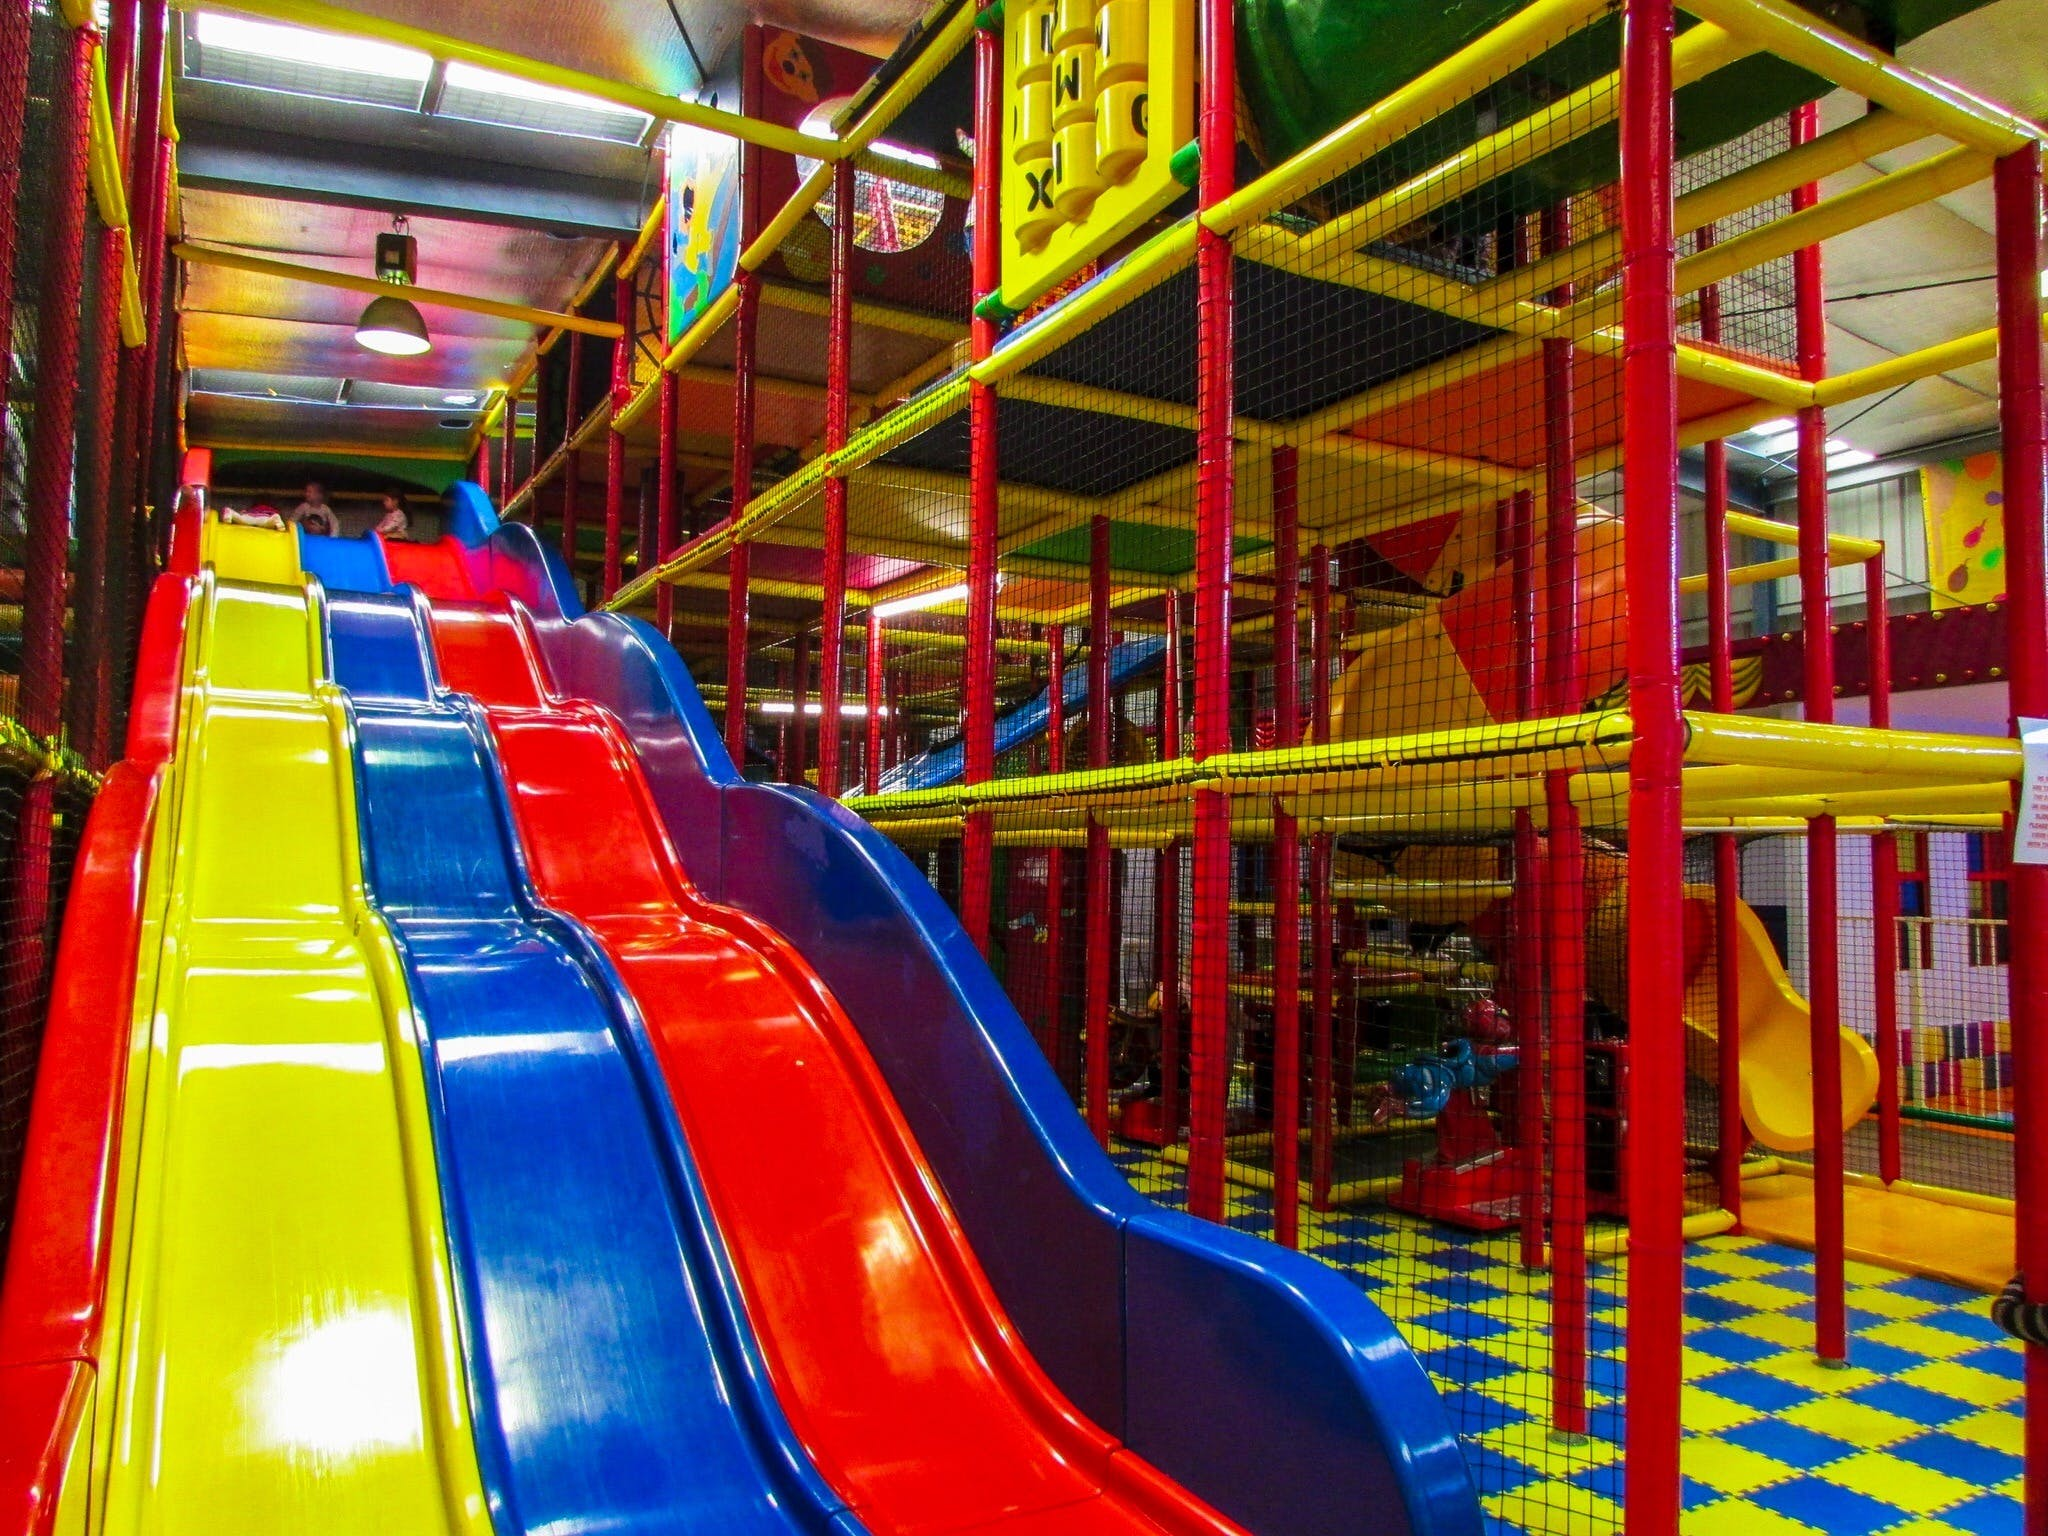 Kidz Shed Indoor Play Centre and Cafe - Attractions Brisbane